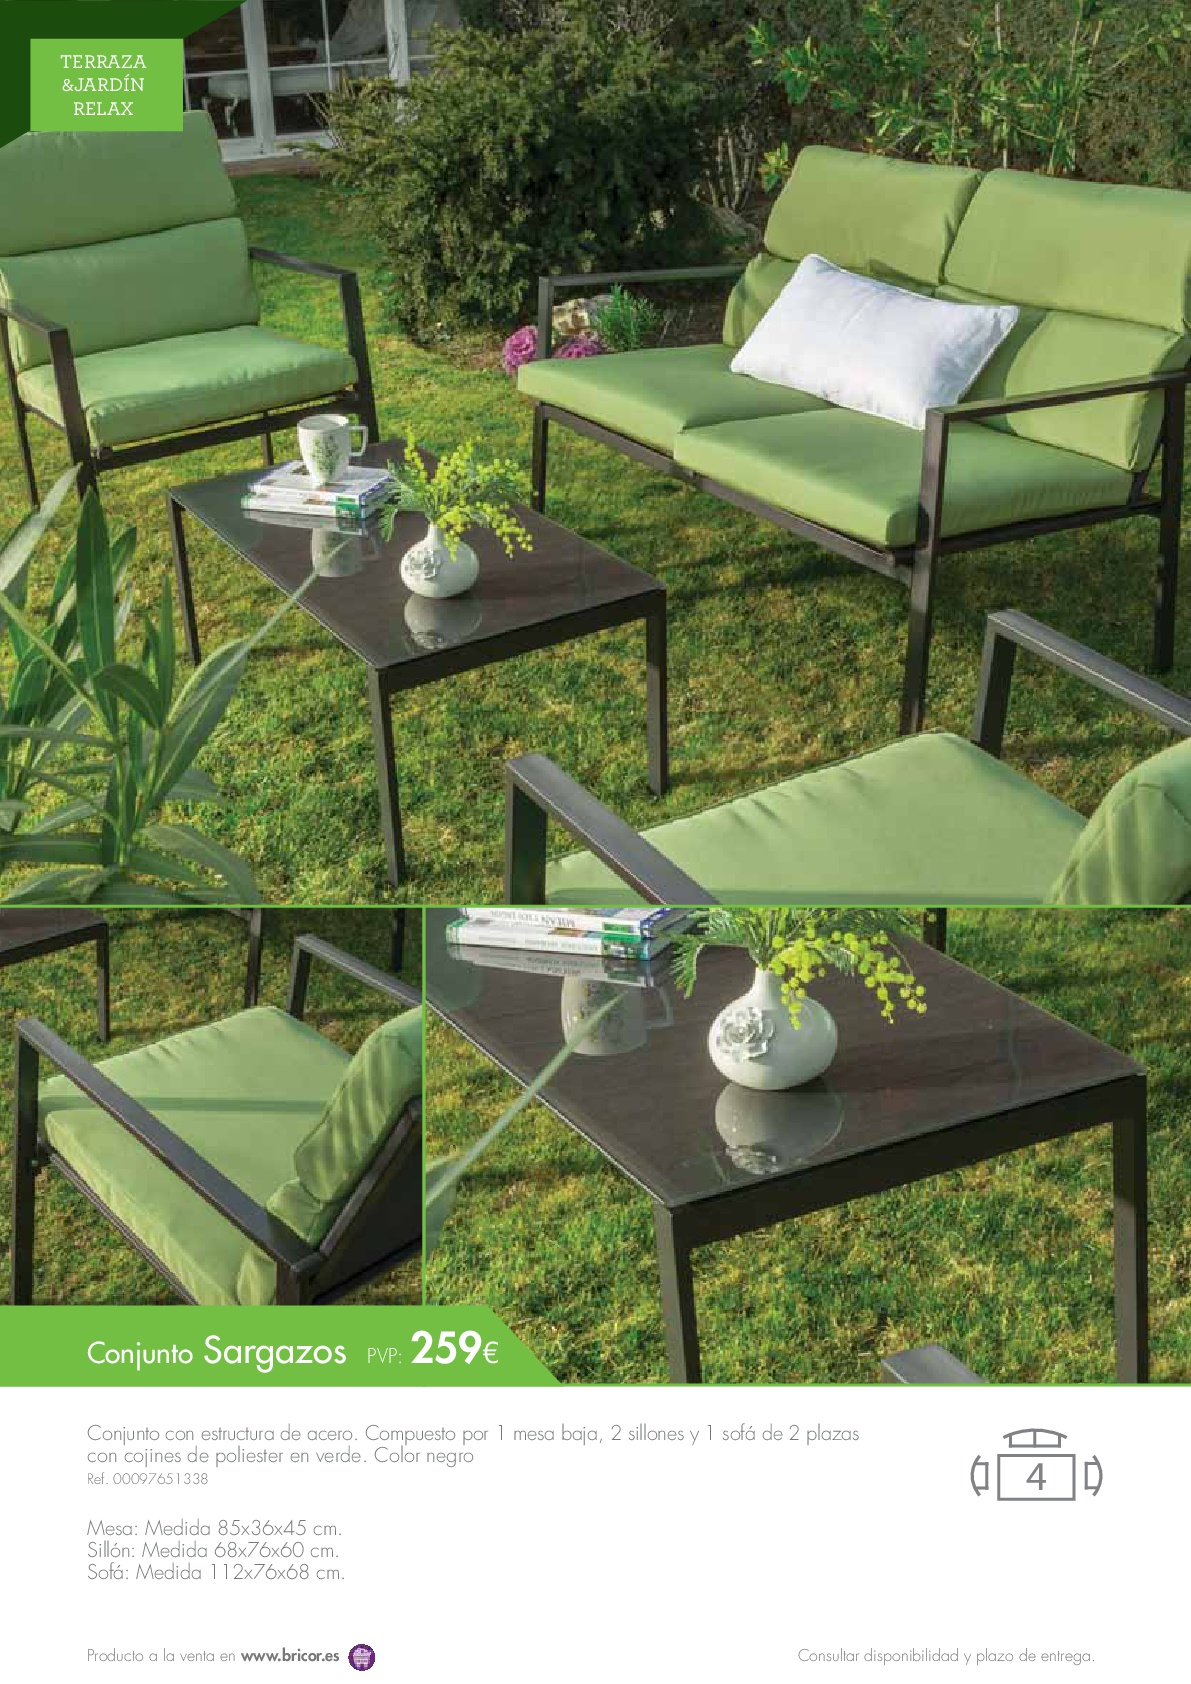 Bricor muebles jardin 201646 for Catalogo muebles jardin